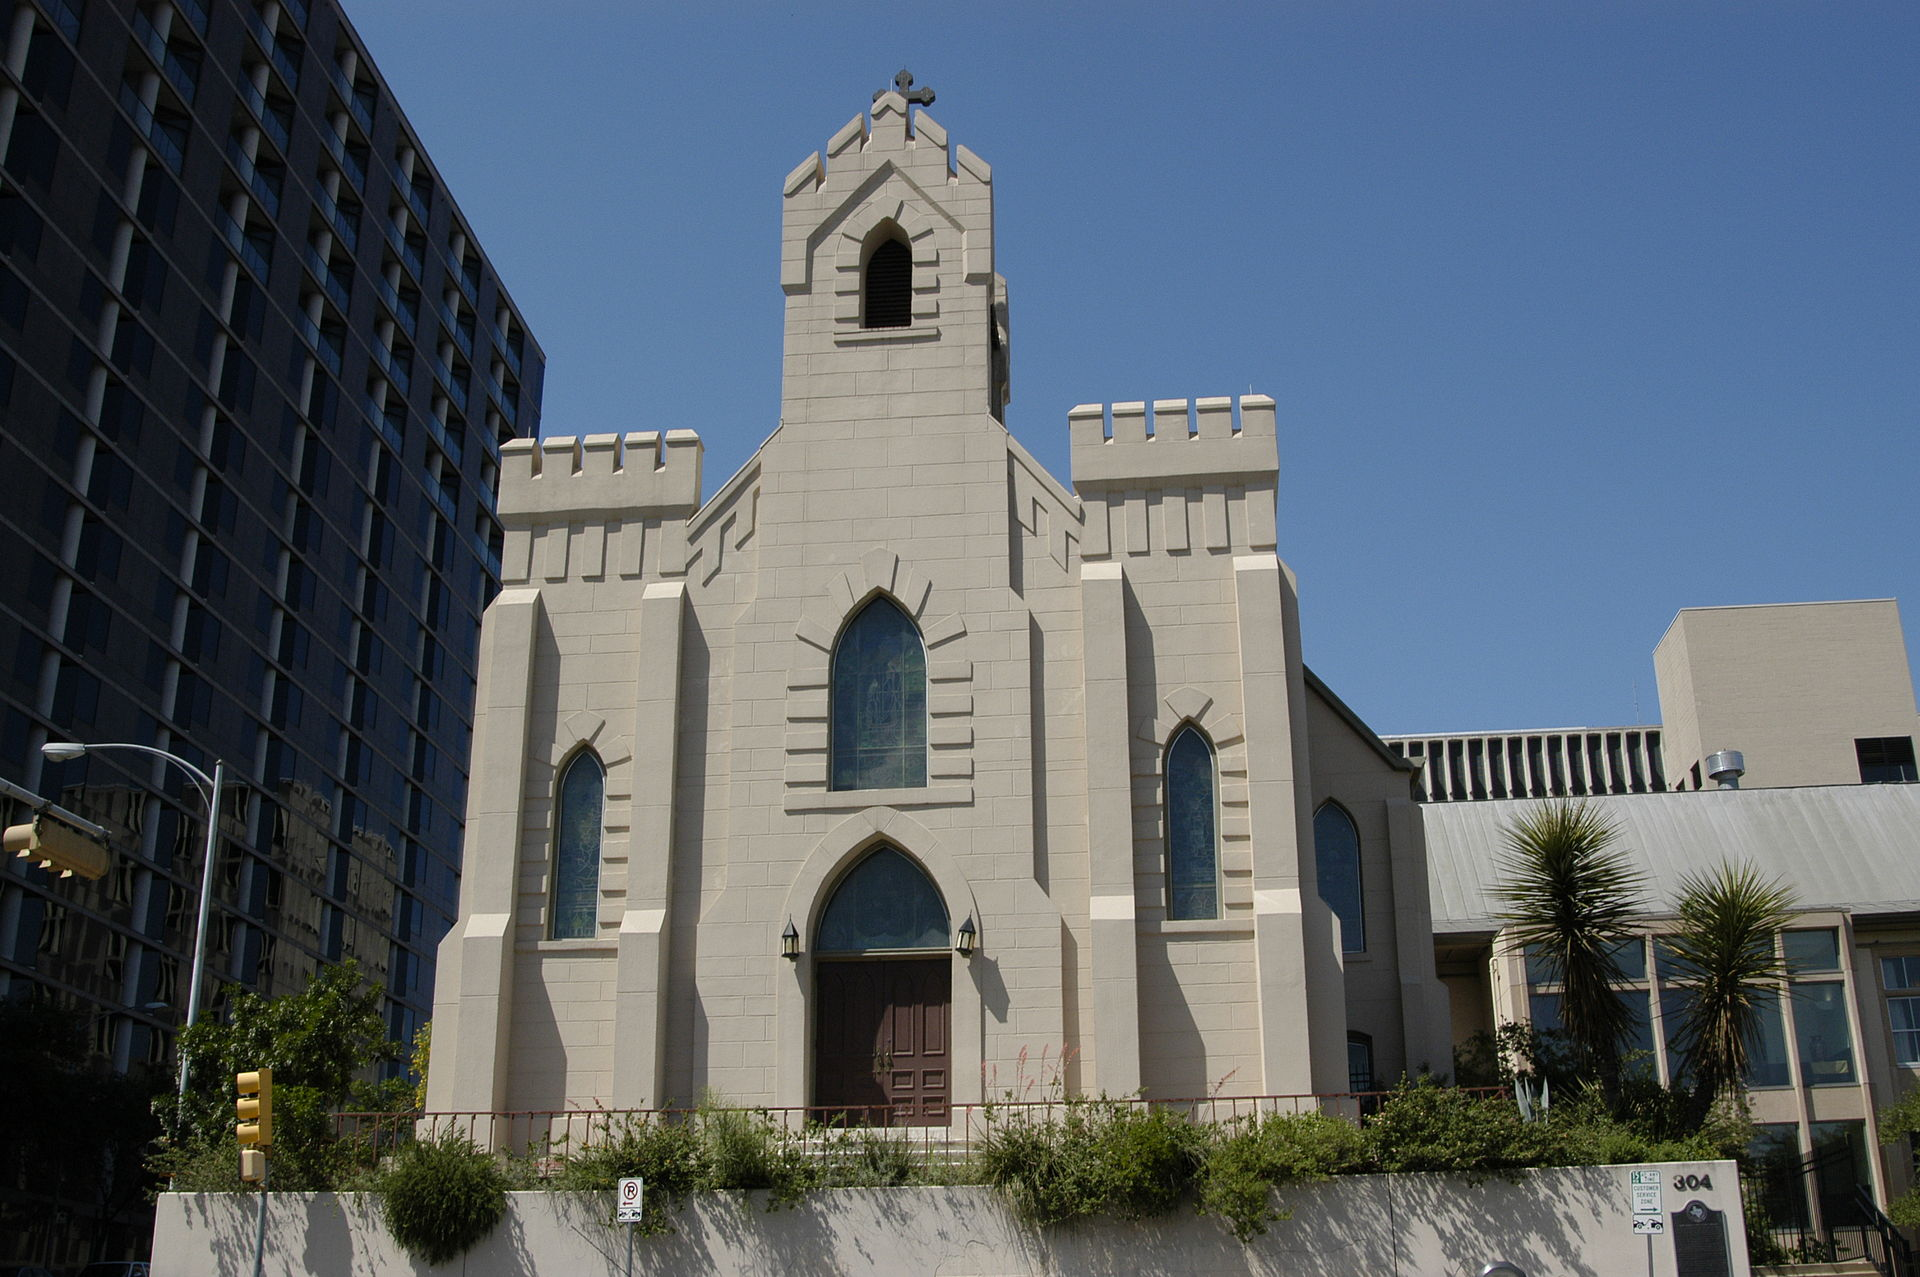 St. David's Episcopal Church was built in 1855 and is among the city's oldest buildings.